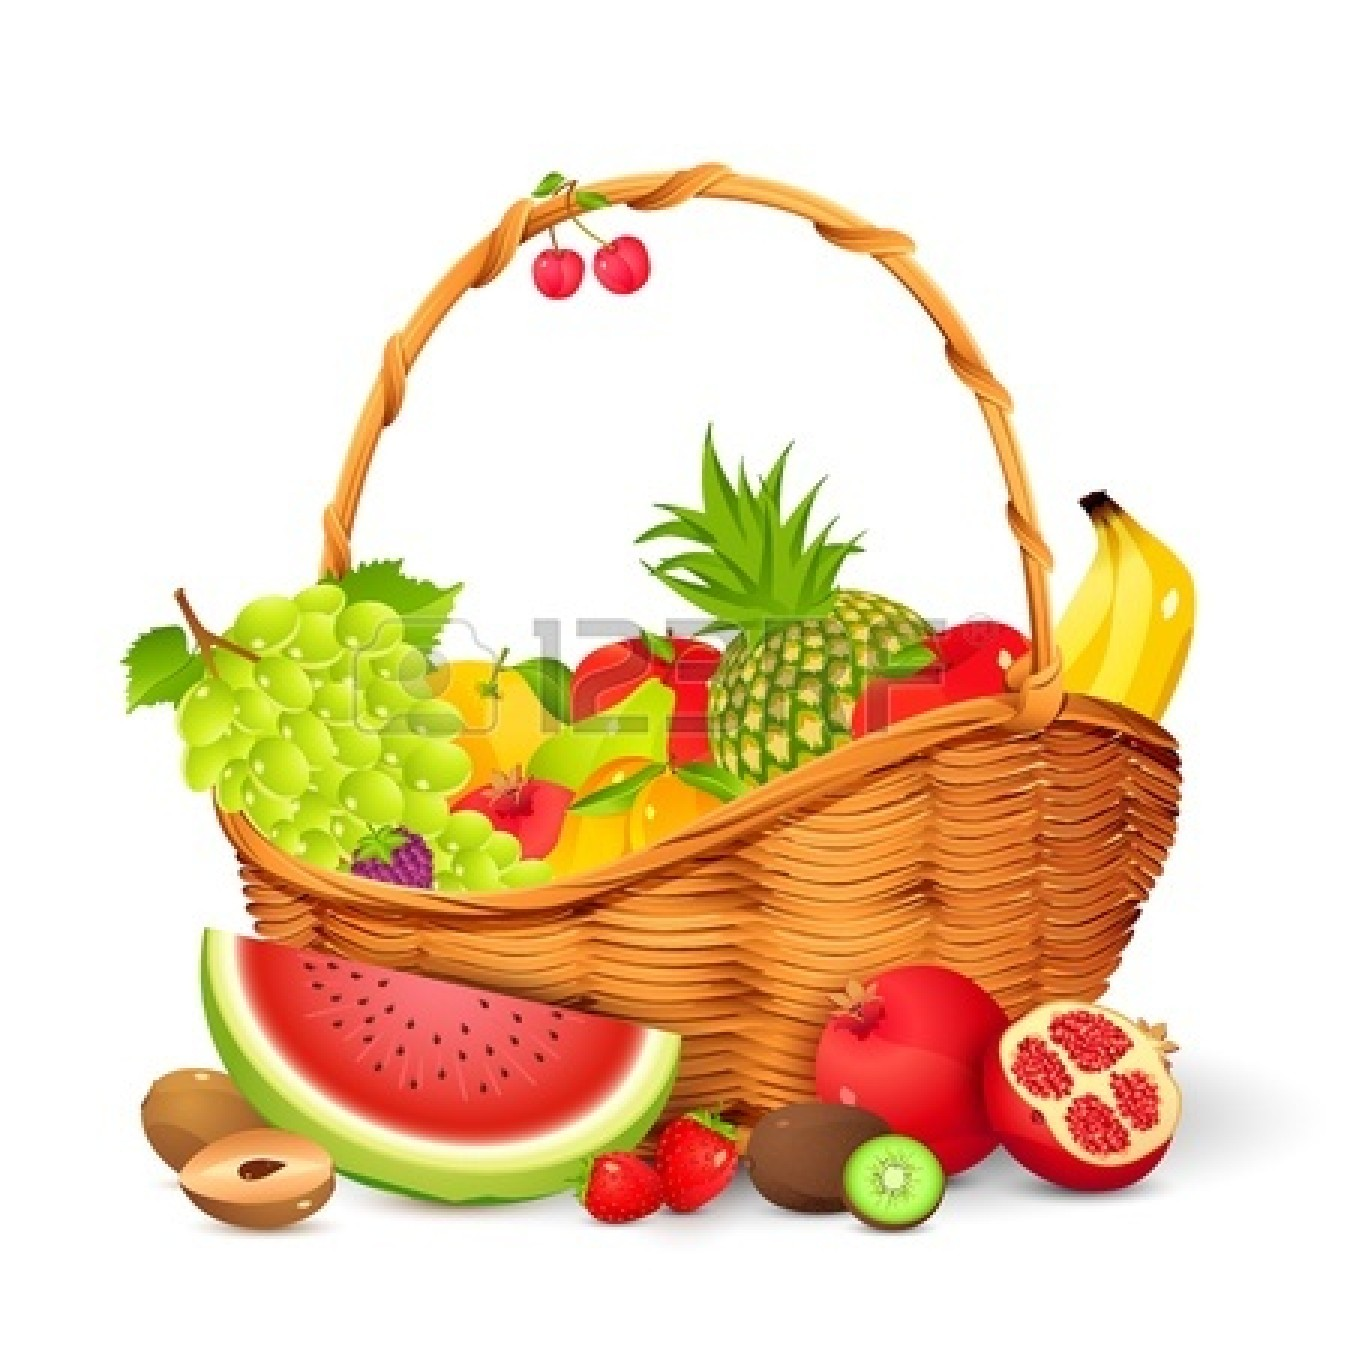 Vegetables clipart basket drawing Basket Basket info wikiHow a